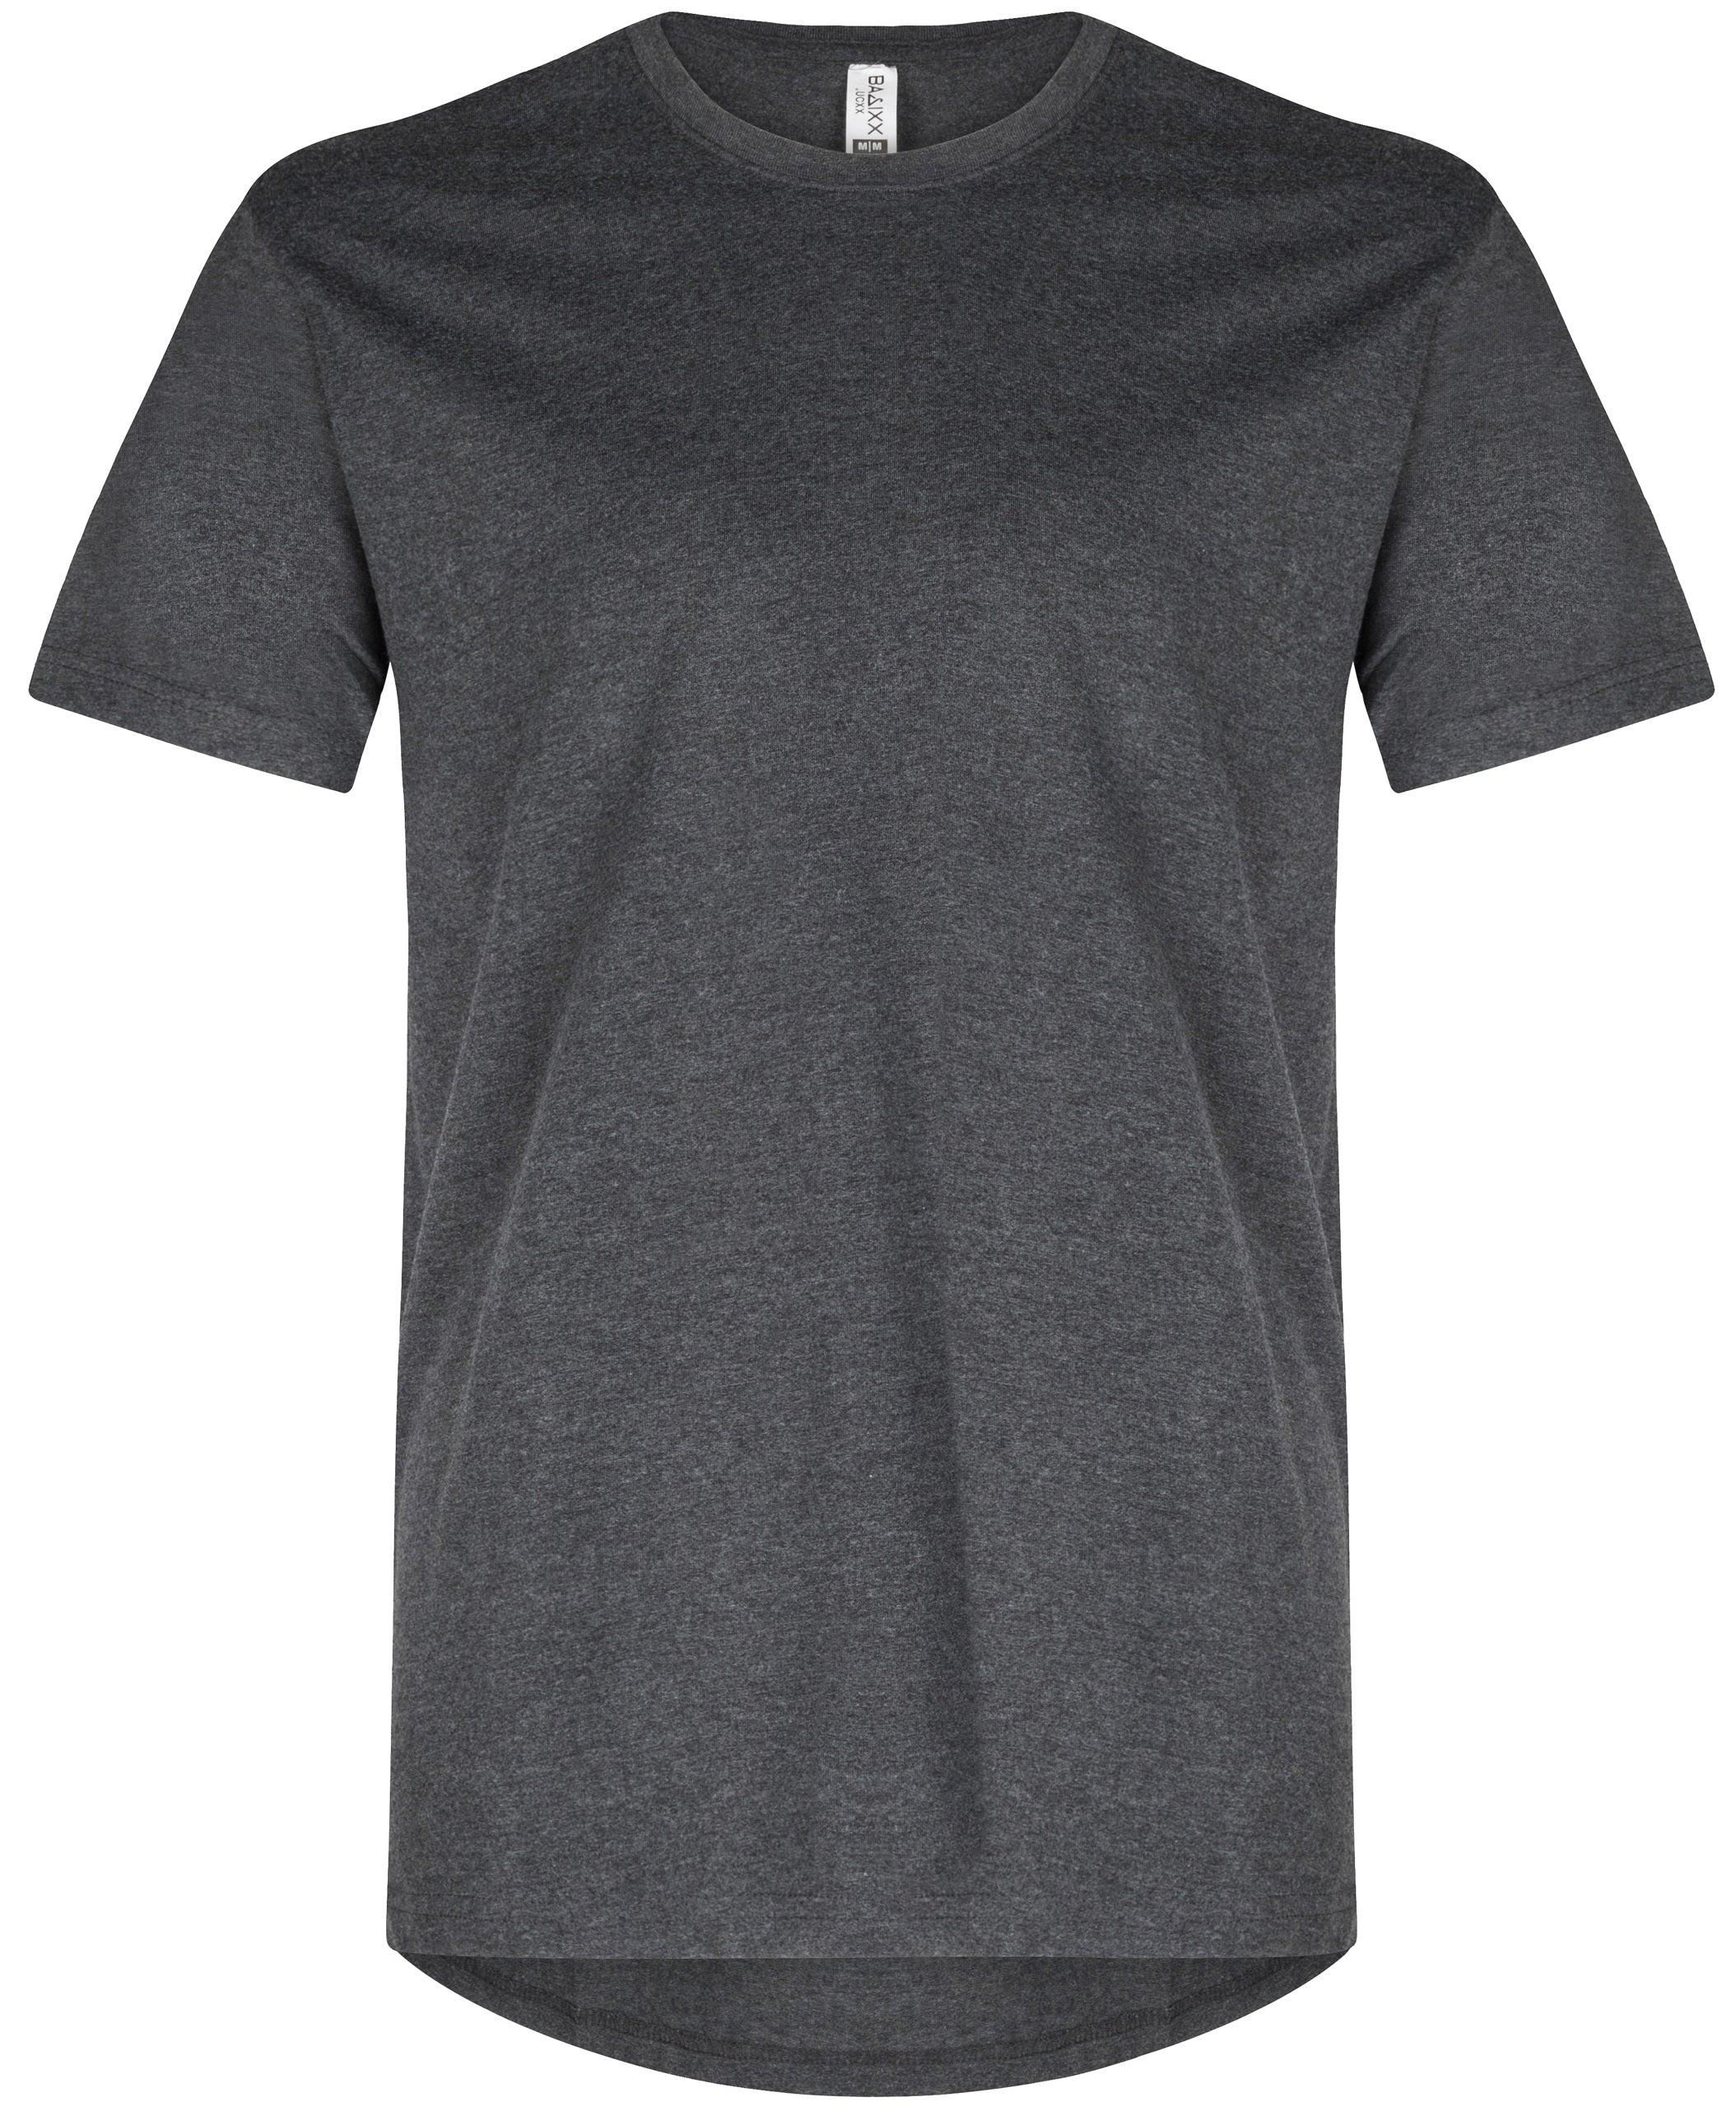 Basic Elongated Straight Scoop T-Shirt Heather Black